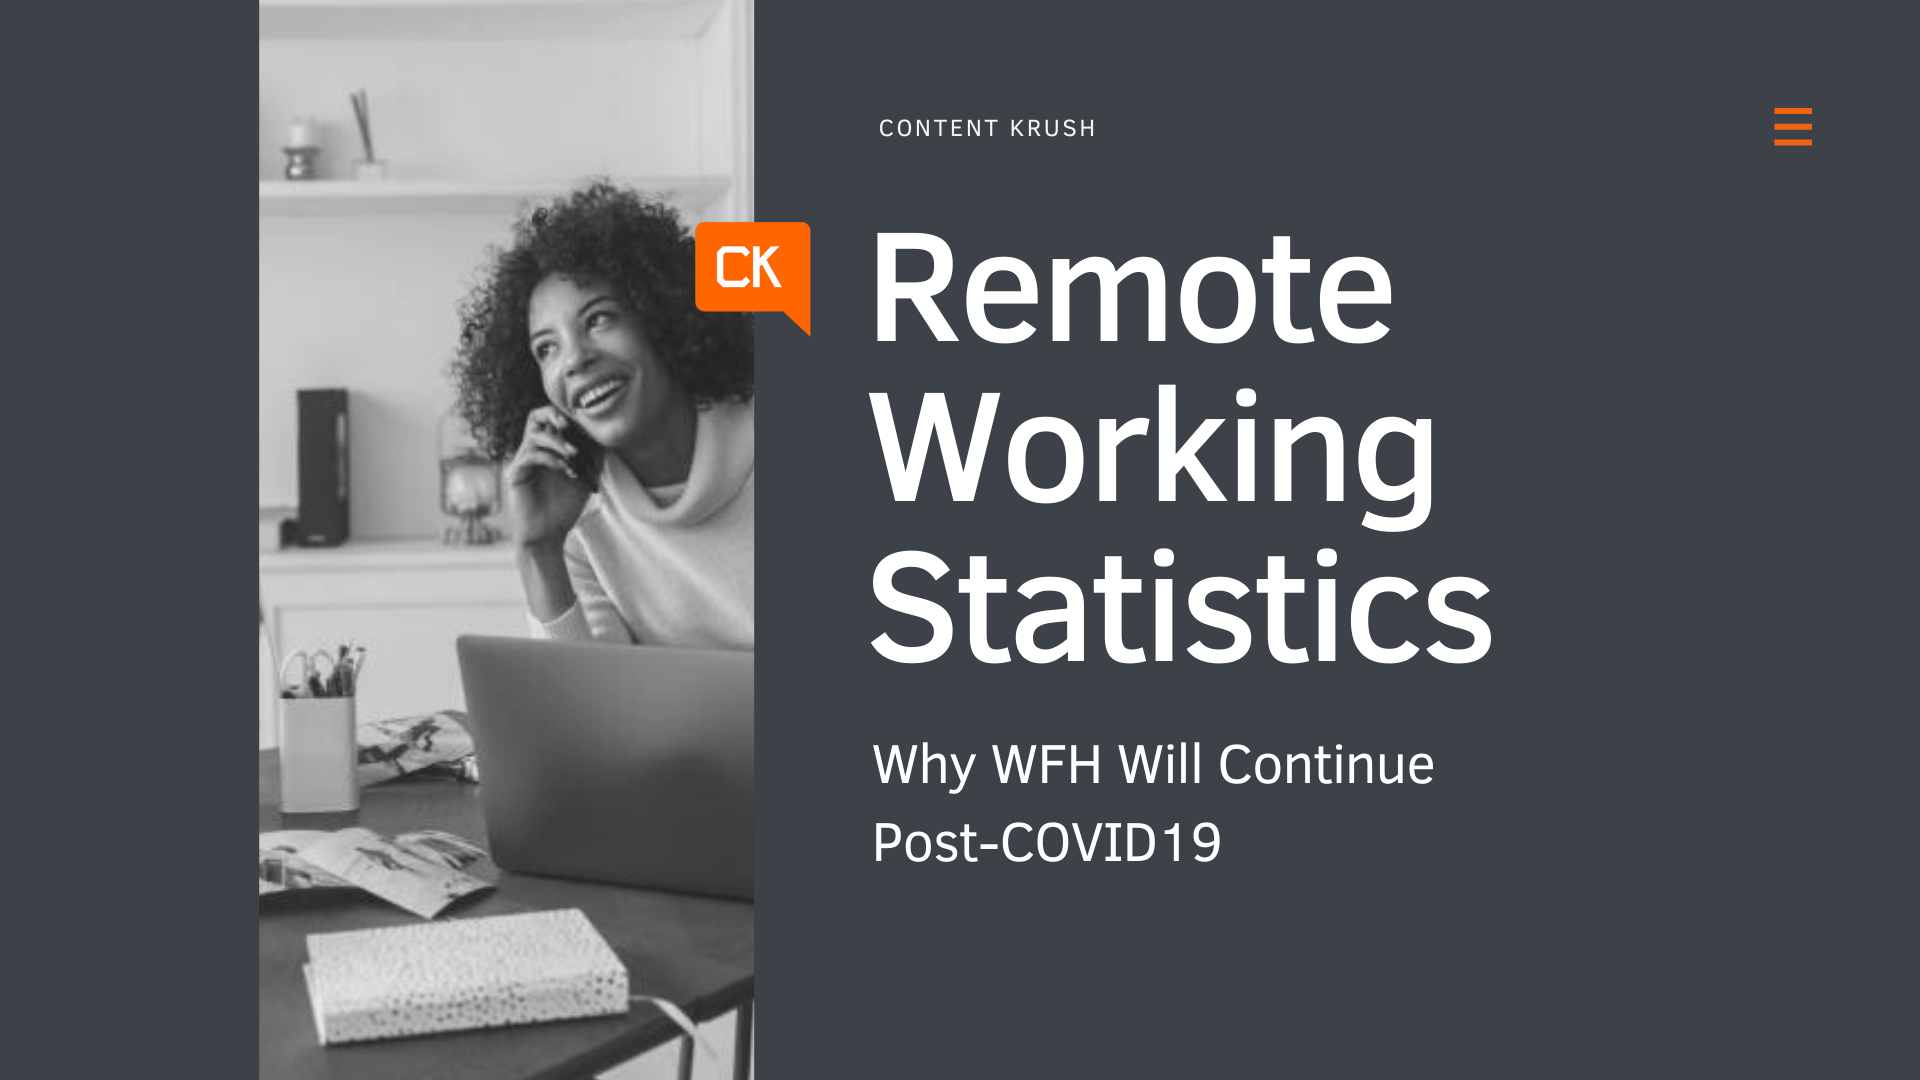 Remote Working Statistics – Why WFH Will Continue Post-COVID19